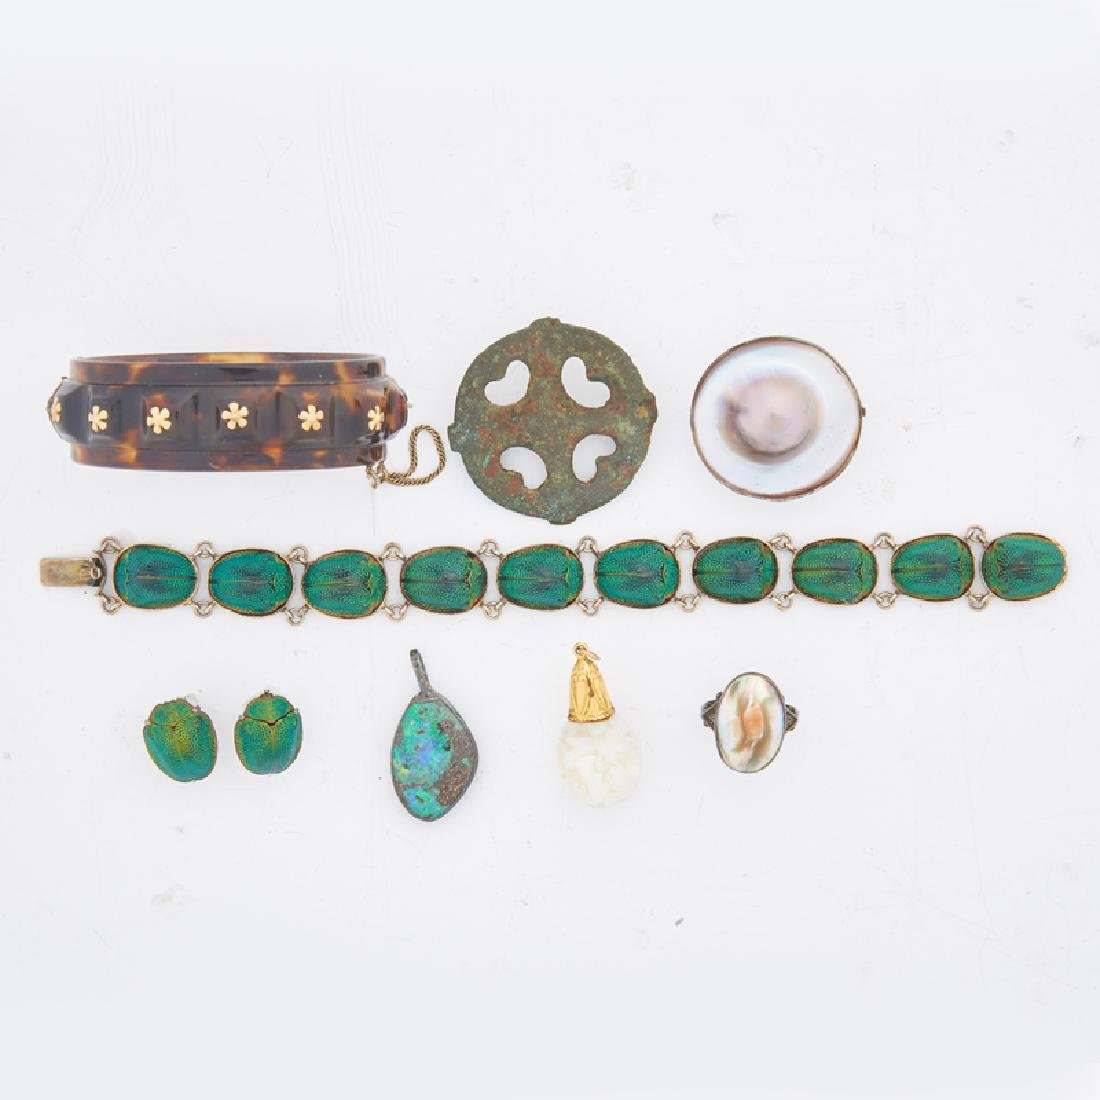 GROUP OF NOVELTY JEWELRY